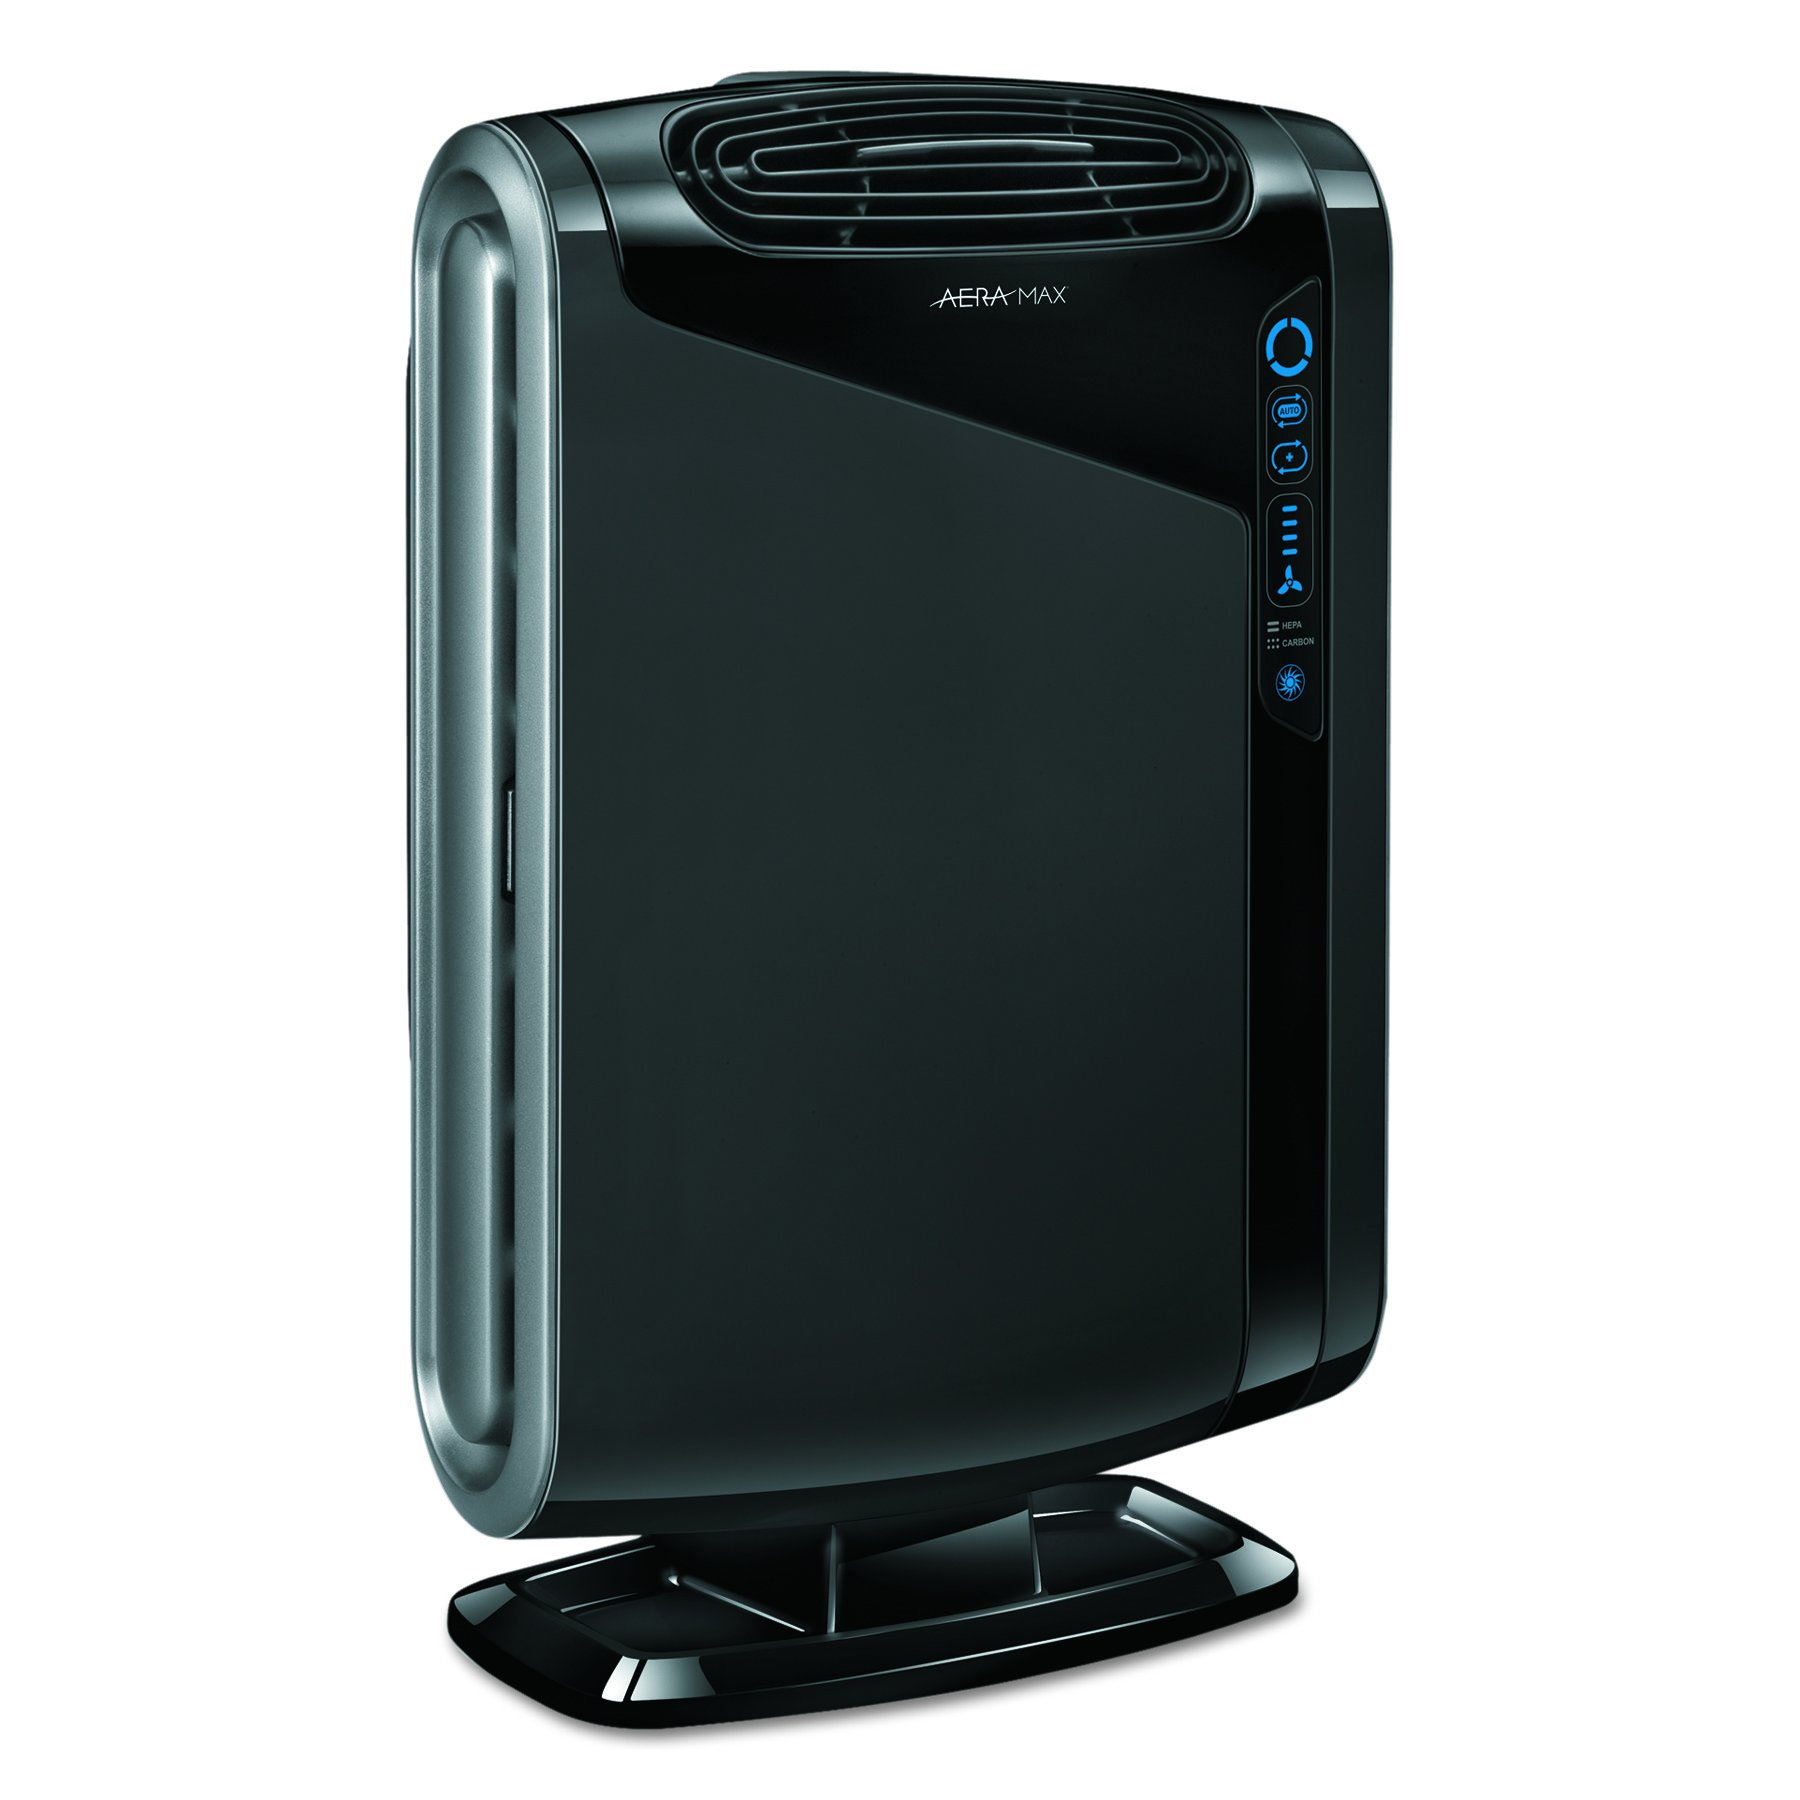 AeraMax 290 Allergen Reducing Air Purifier with 4 Stage Cleaning System by Fellowes